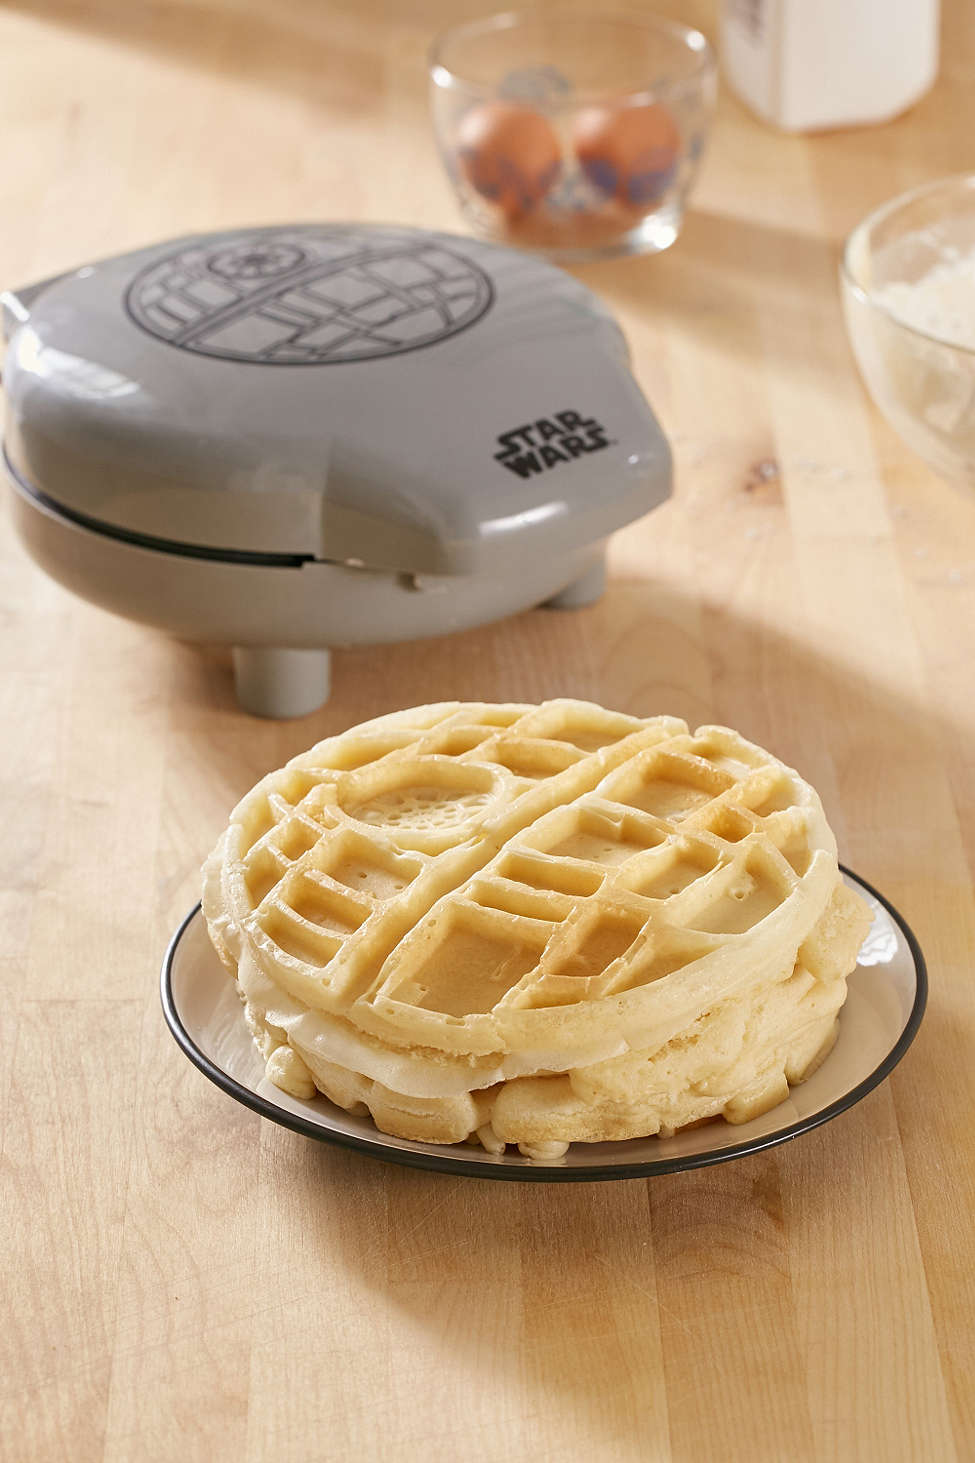 Death Star waffle maker from Urban Outfitters